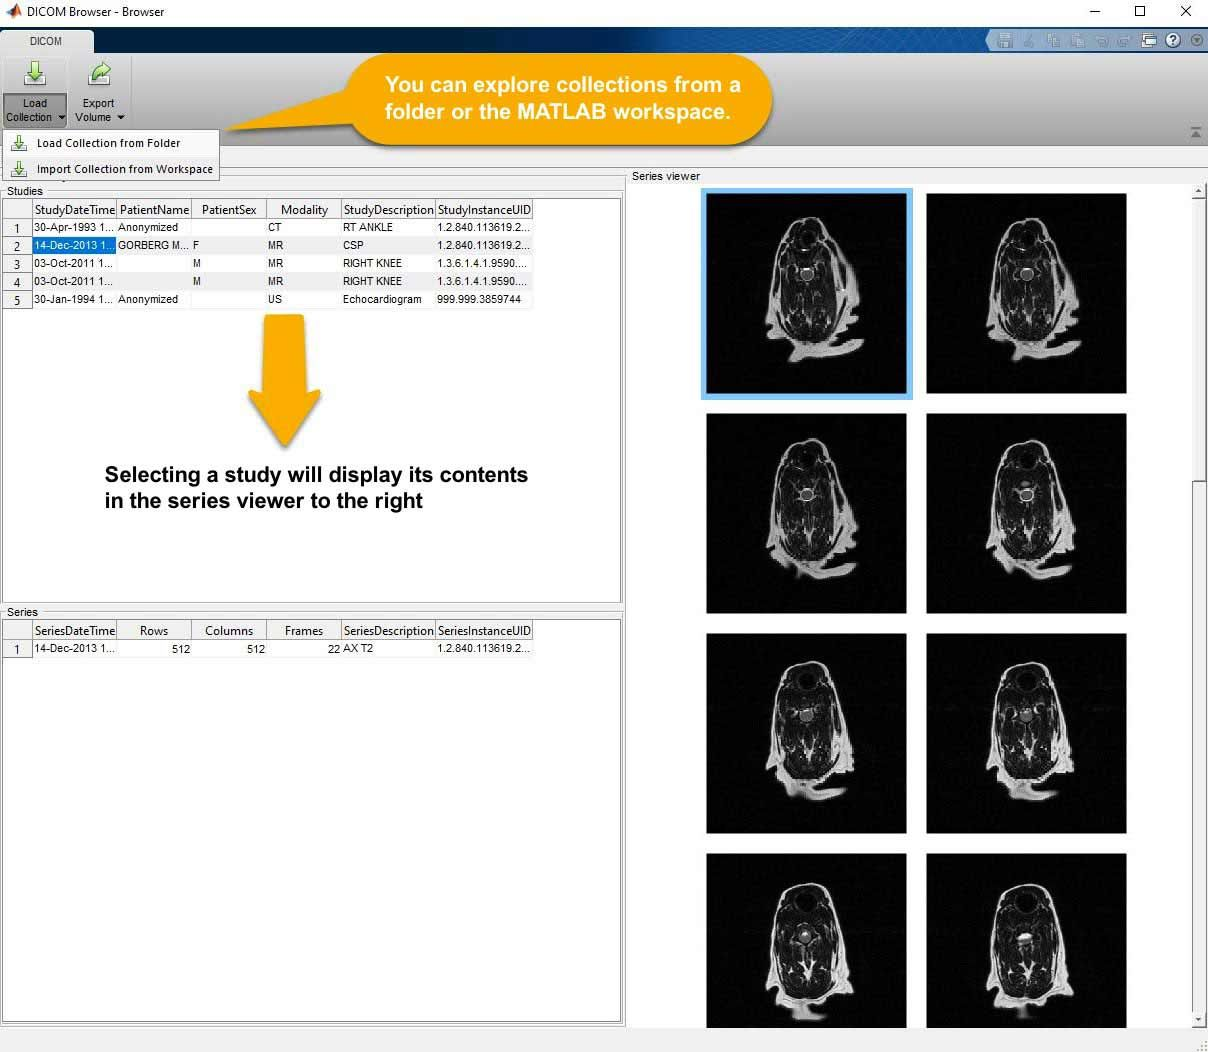 The DICOM Browser app allows you to explore collections of DICOM files and then export the data to other MATLAB apps or the workspace.